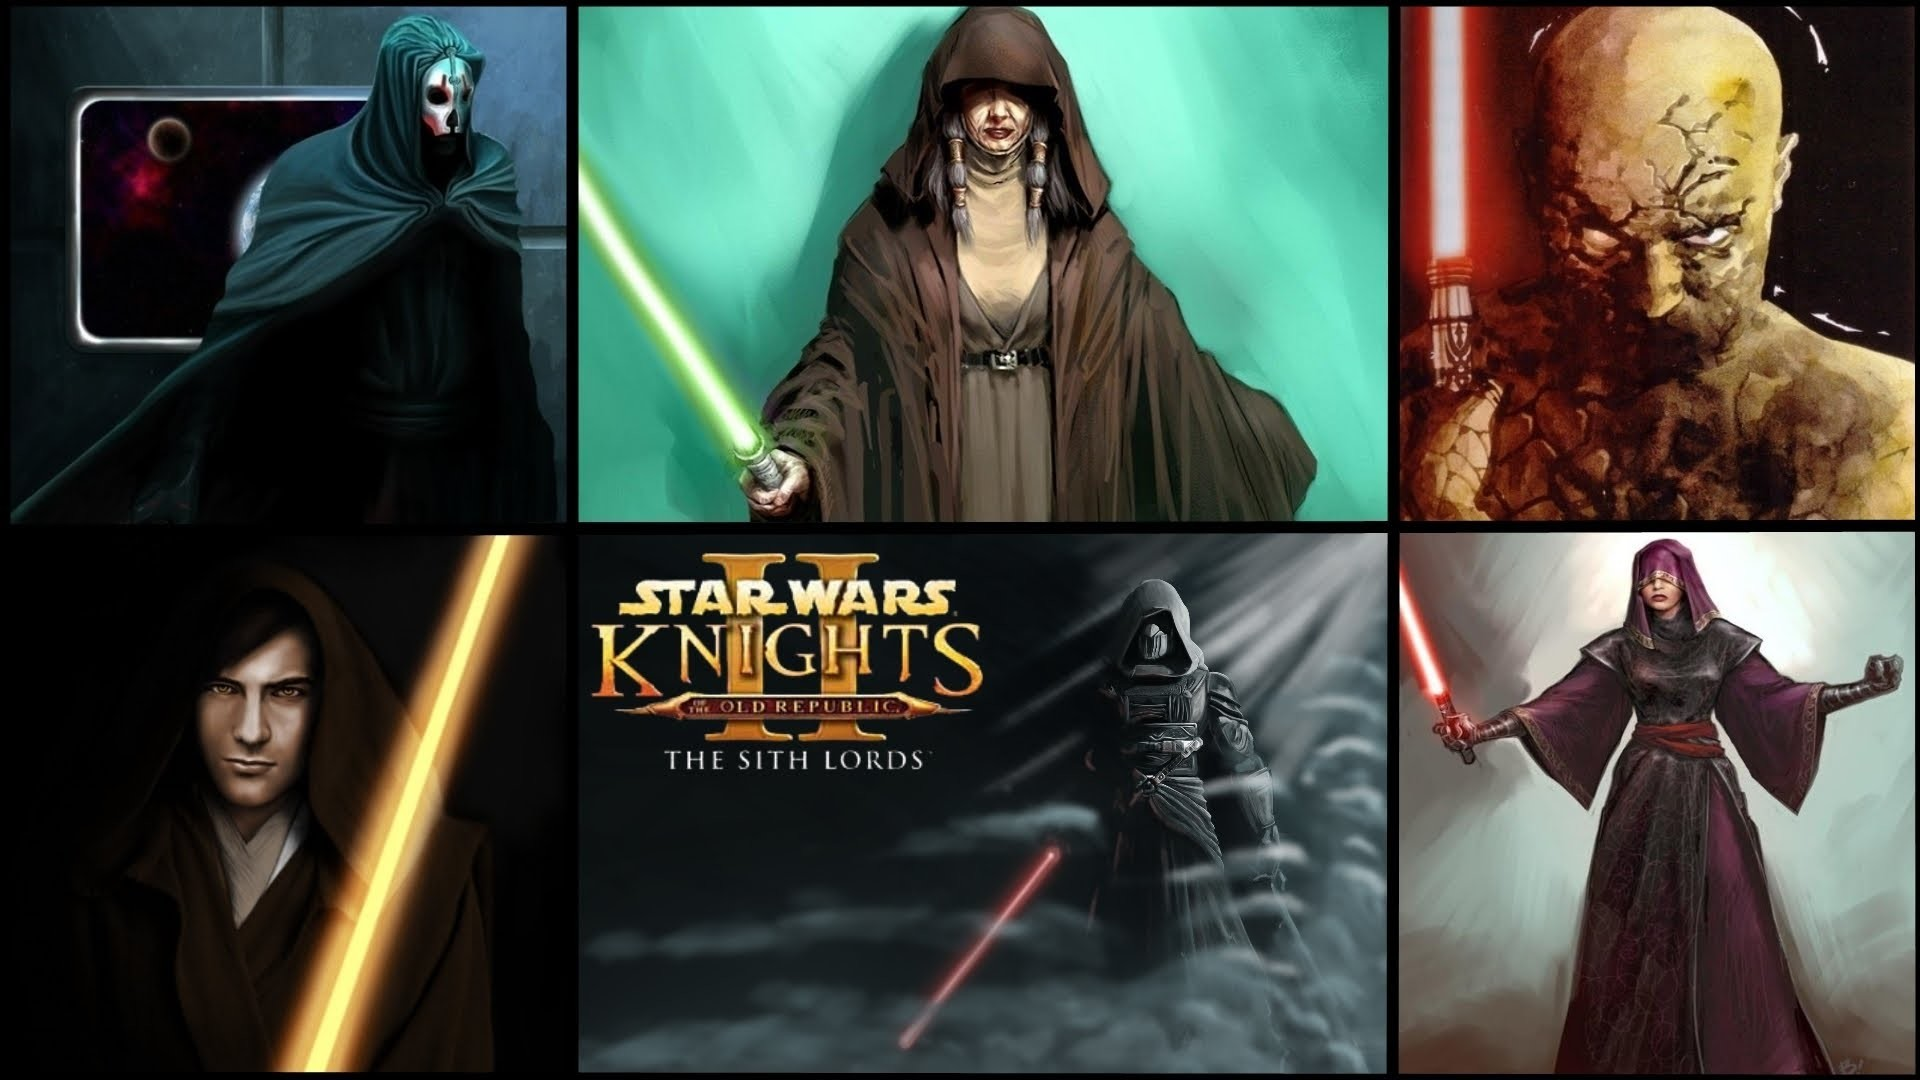 Kotor 2 Wallpapers (62+ Images